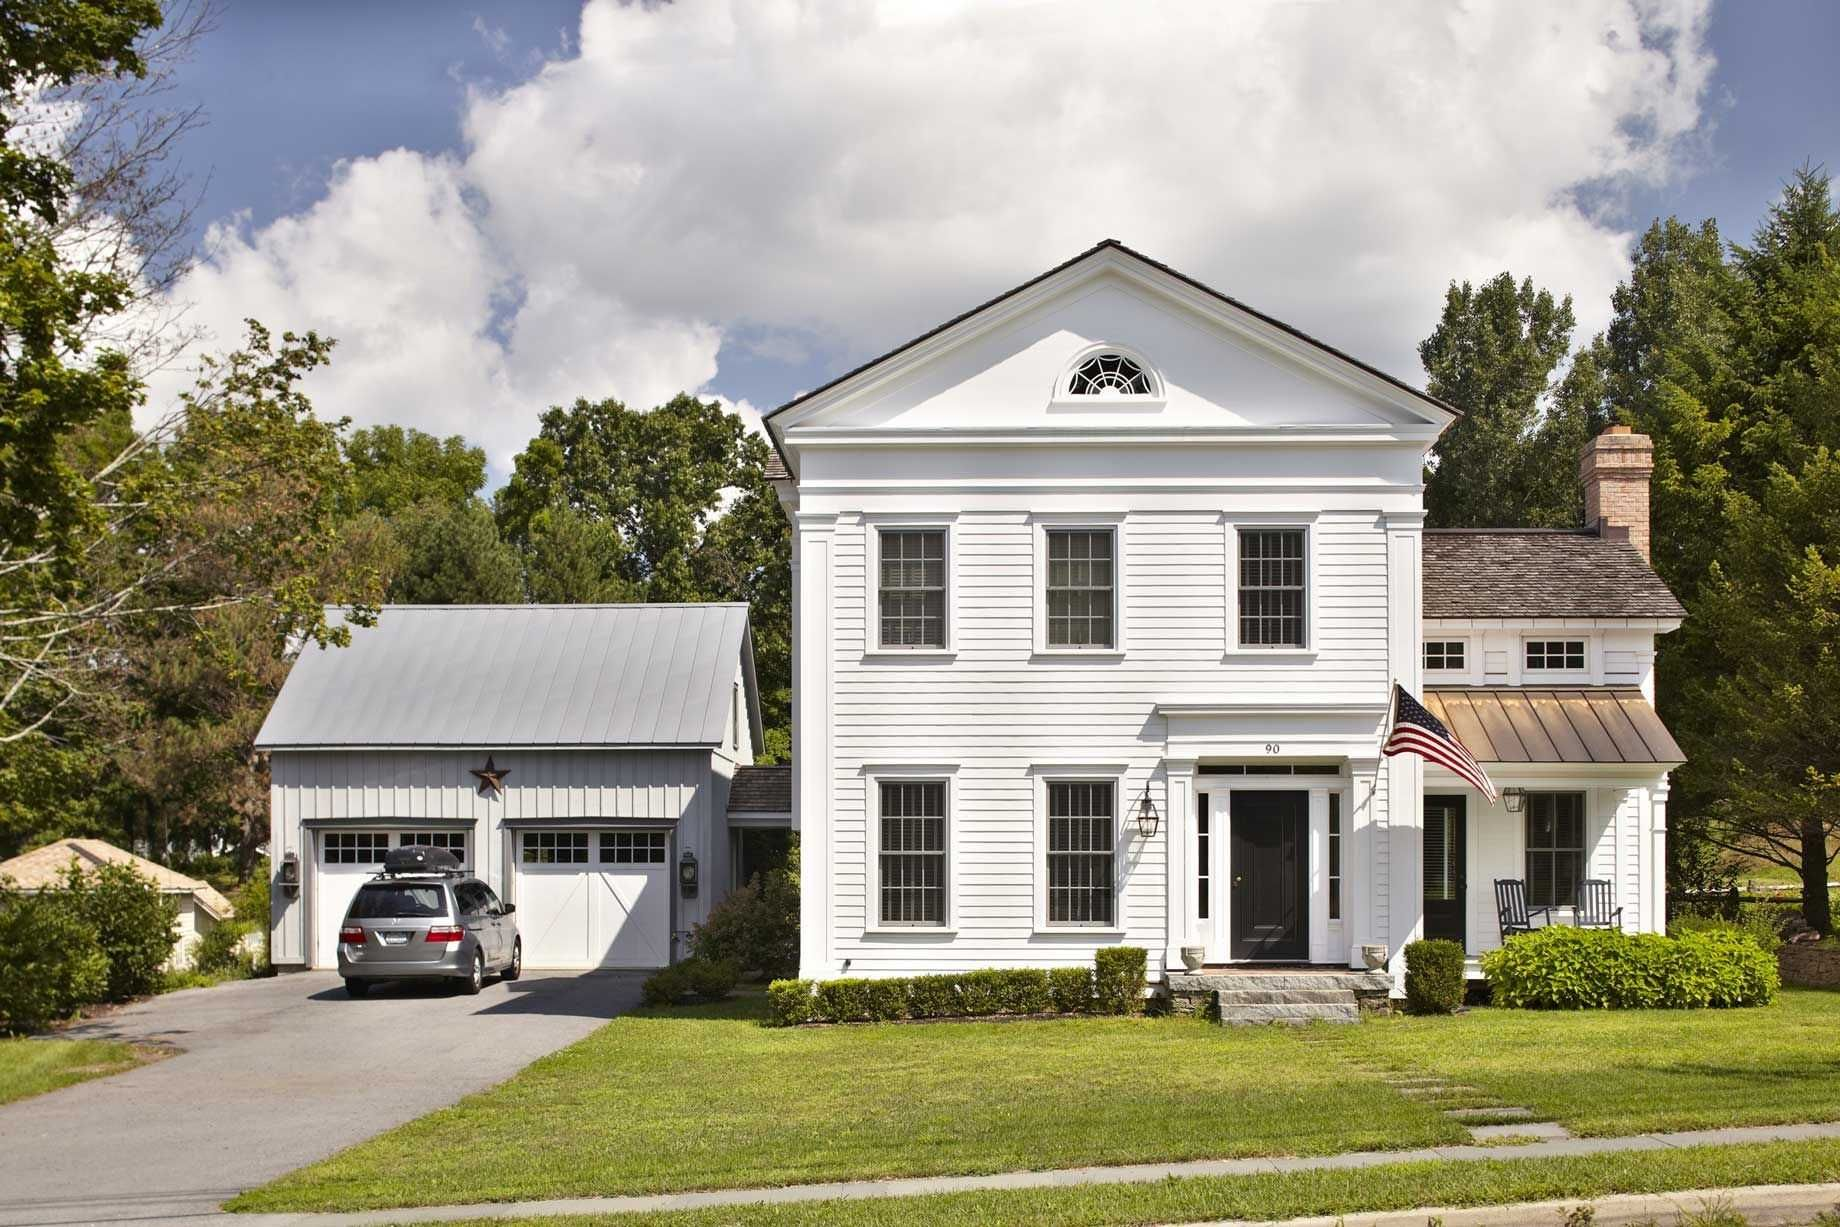 Southern Greek Revival Farmhouse Beautiful Southern Greek Revival Farmhouse Greek Revival Home Greek Revival Home Greek Revival Architecture Greek Revival